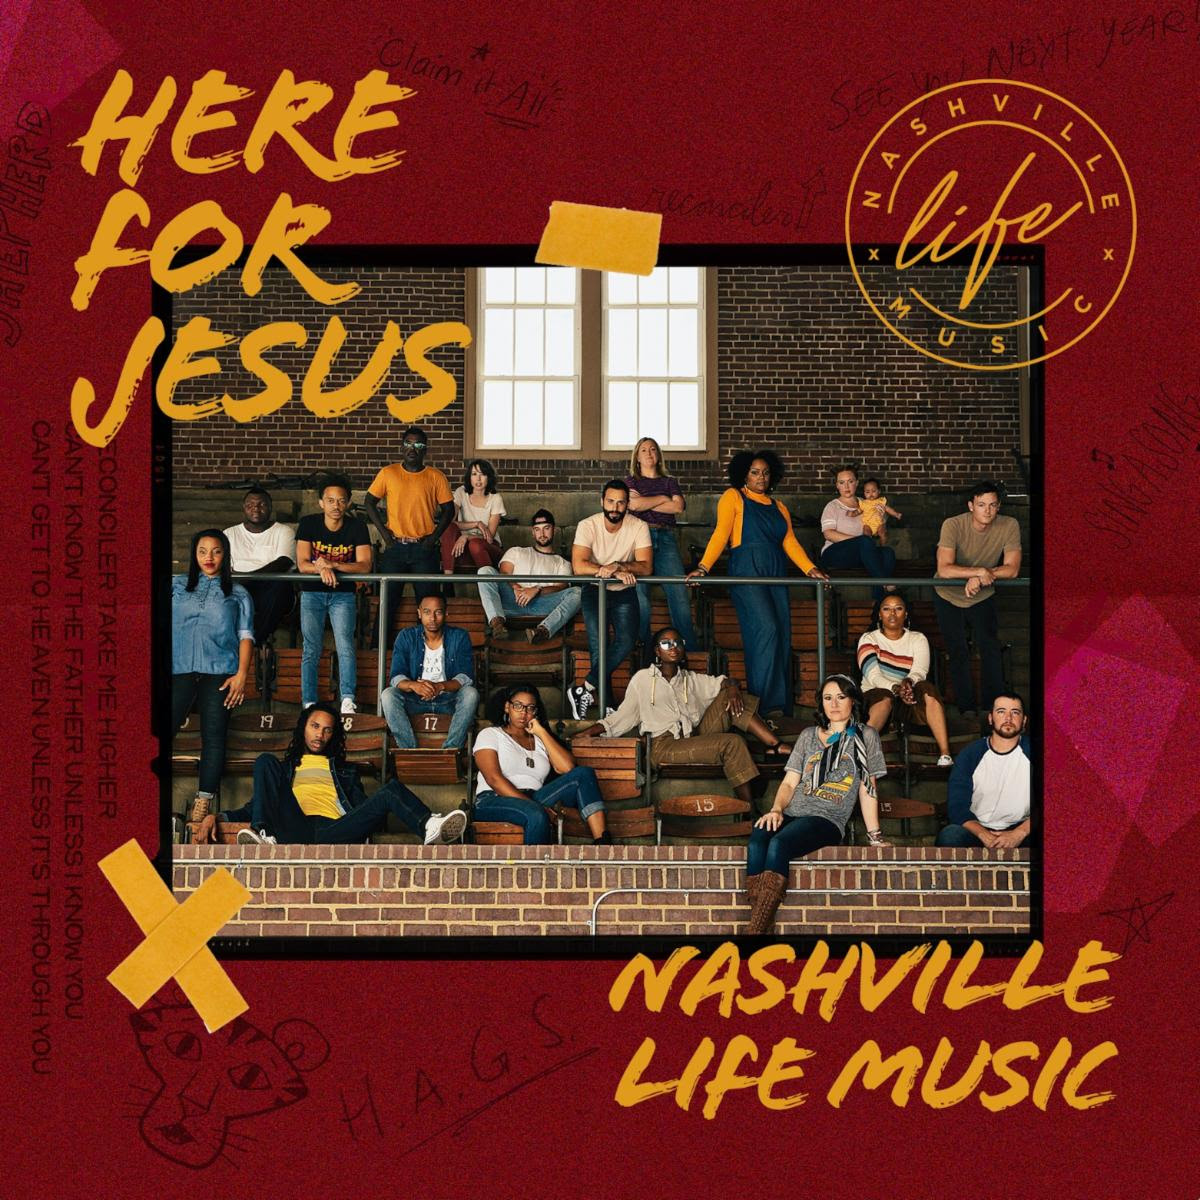 Nashville Life Music Is Here For Jesus With New Album Release On May 15th